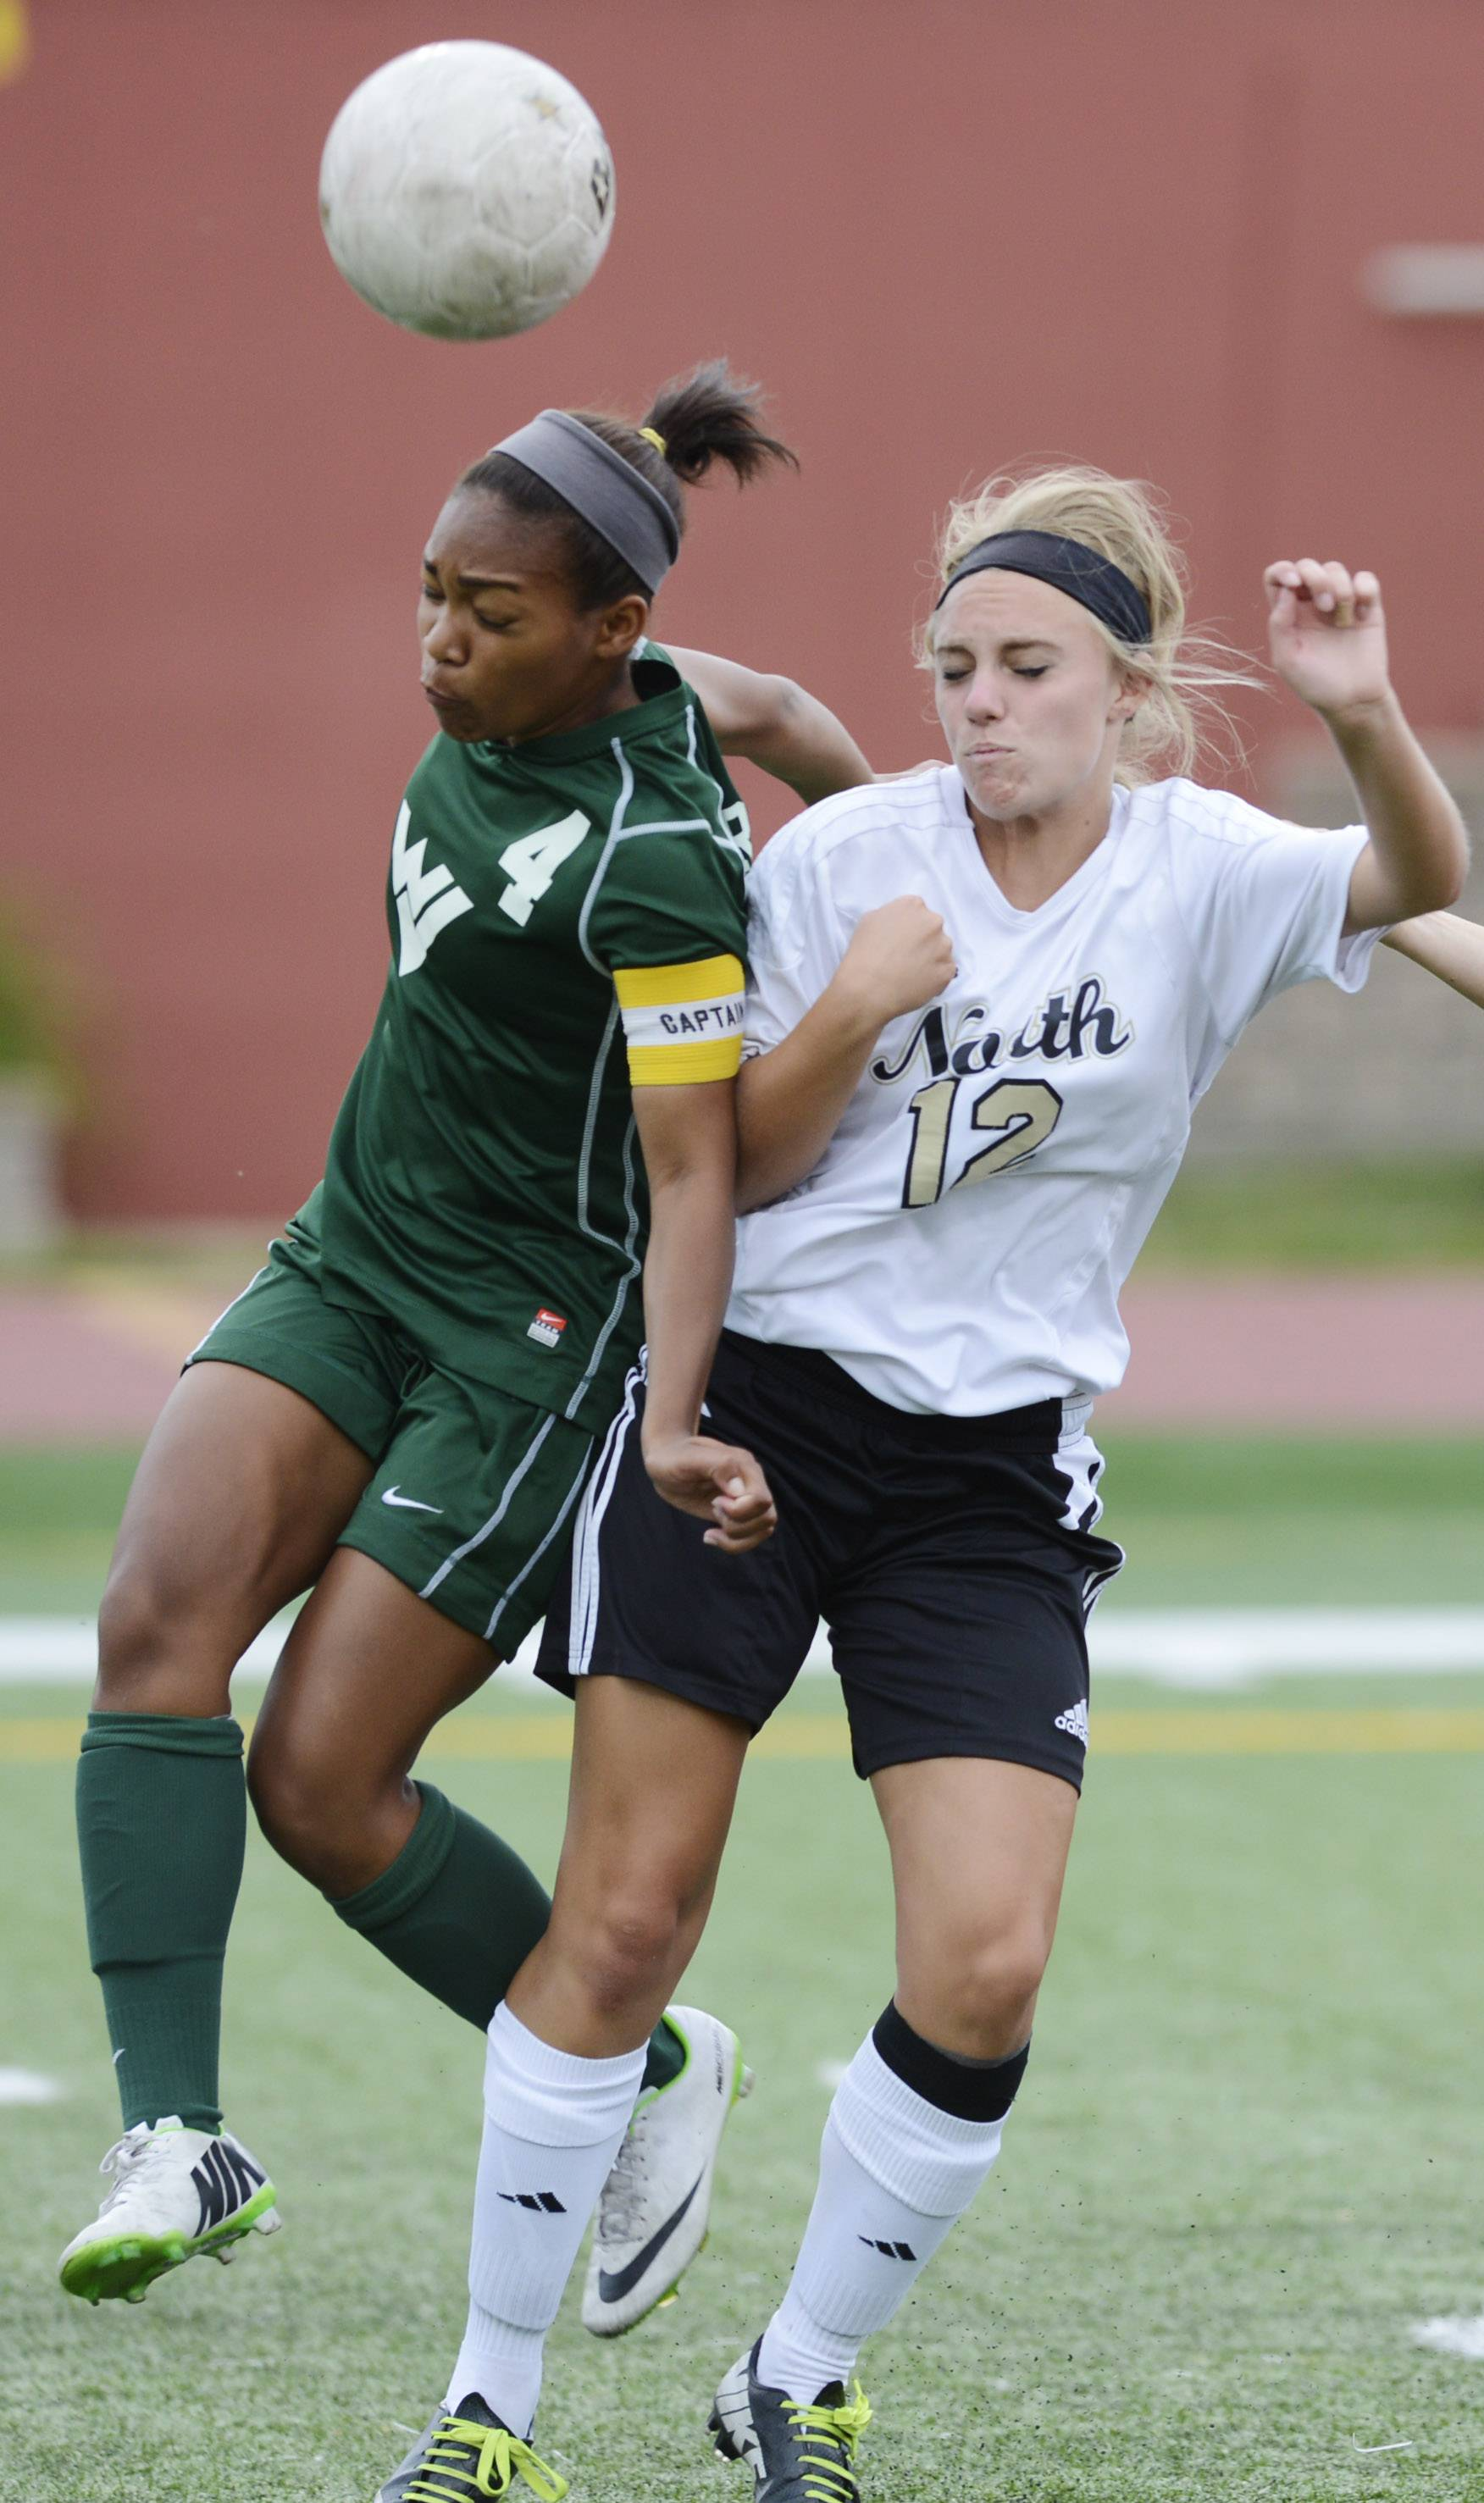 Kristen Dodson, left, of Waubonsie Valley, left, gets in front of Lexi Cesario of Lincoln-Way North during the girls soccer Class 3A state third-place game at North Central College in Naperville Saturday.